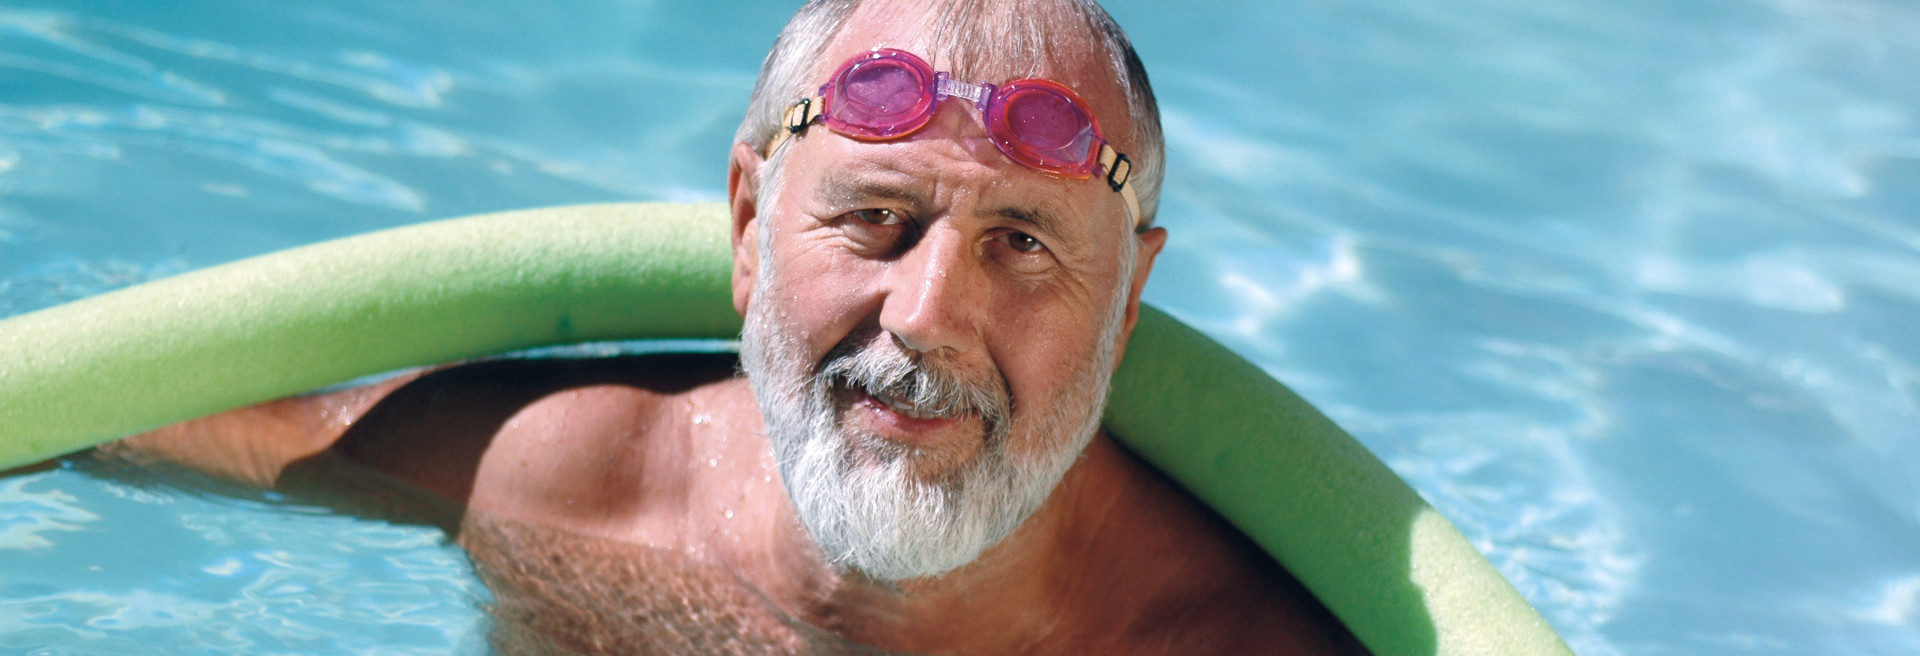 Exercising in the pool for seniors -  THERMALSPA Velké Losiny